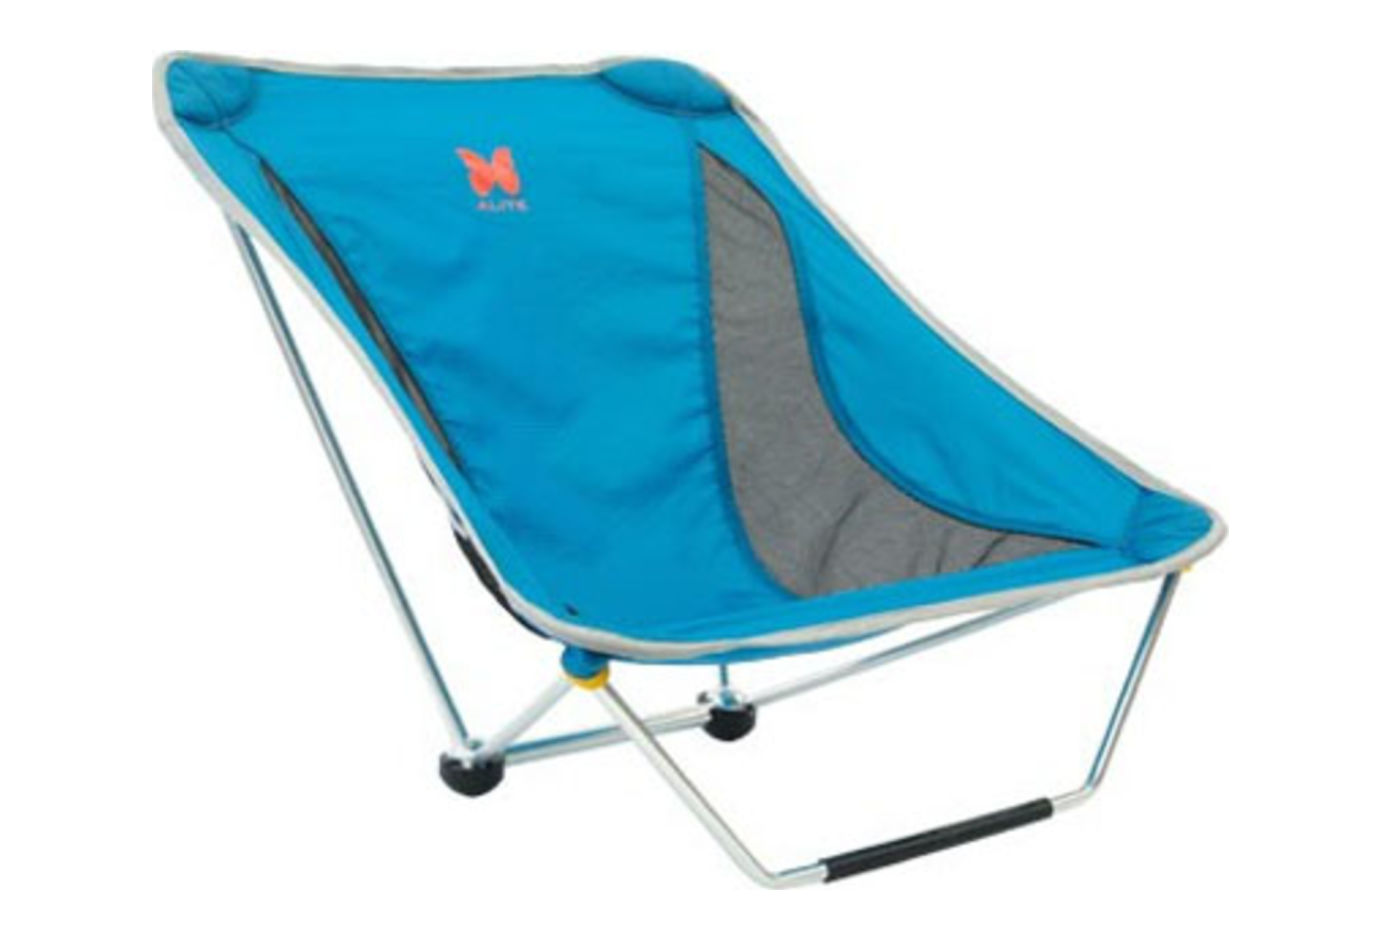 Alite Monarch Chair Alite Mayfly Camping Chair Capitola Blue